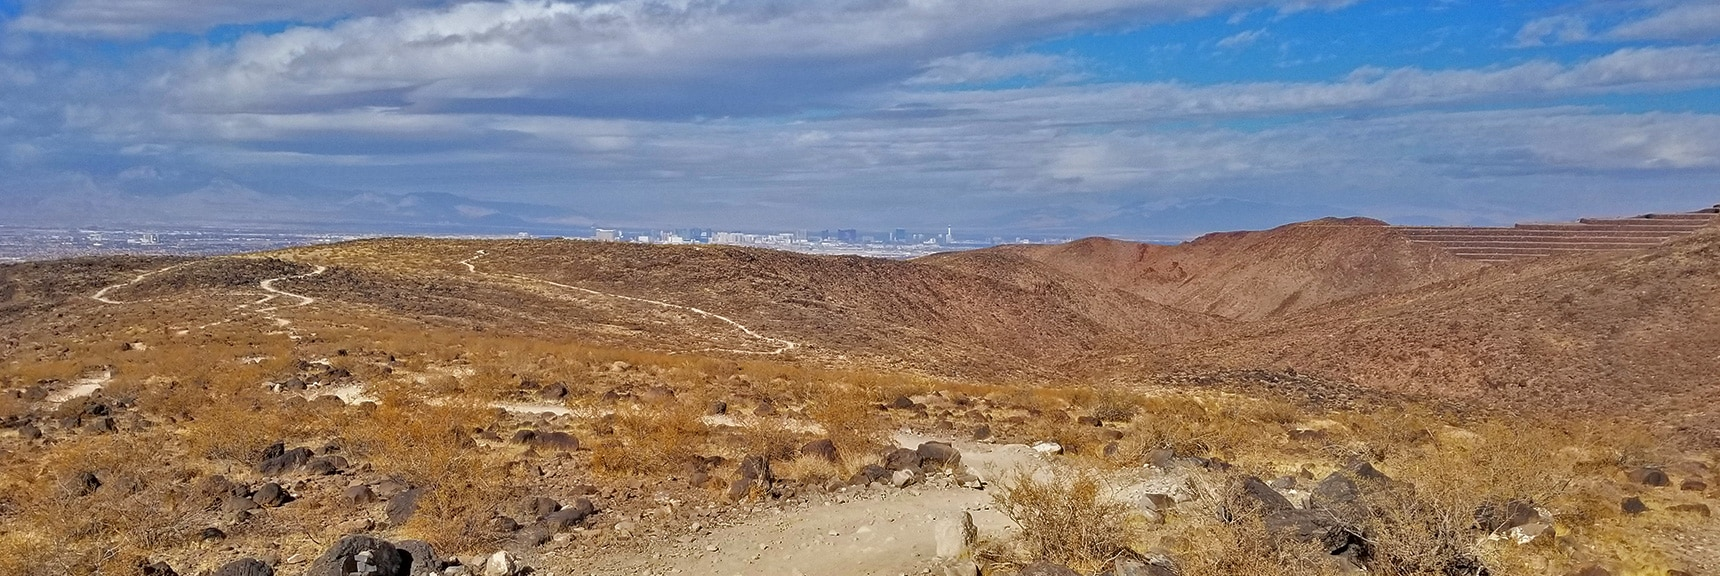 Network of Trails in the Hills Above Anthem and the Las Vegas Valley   McCullough Hills Trail in Sloan Canyon National Conservation Area, Nevada